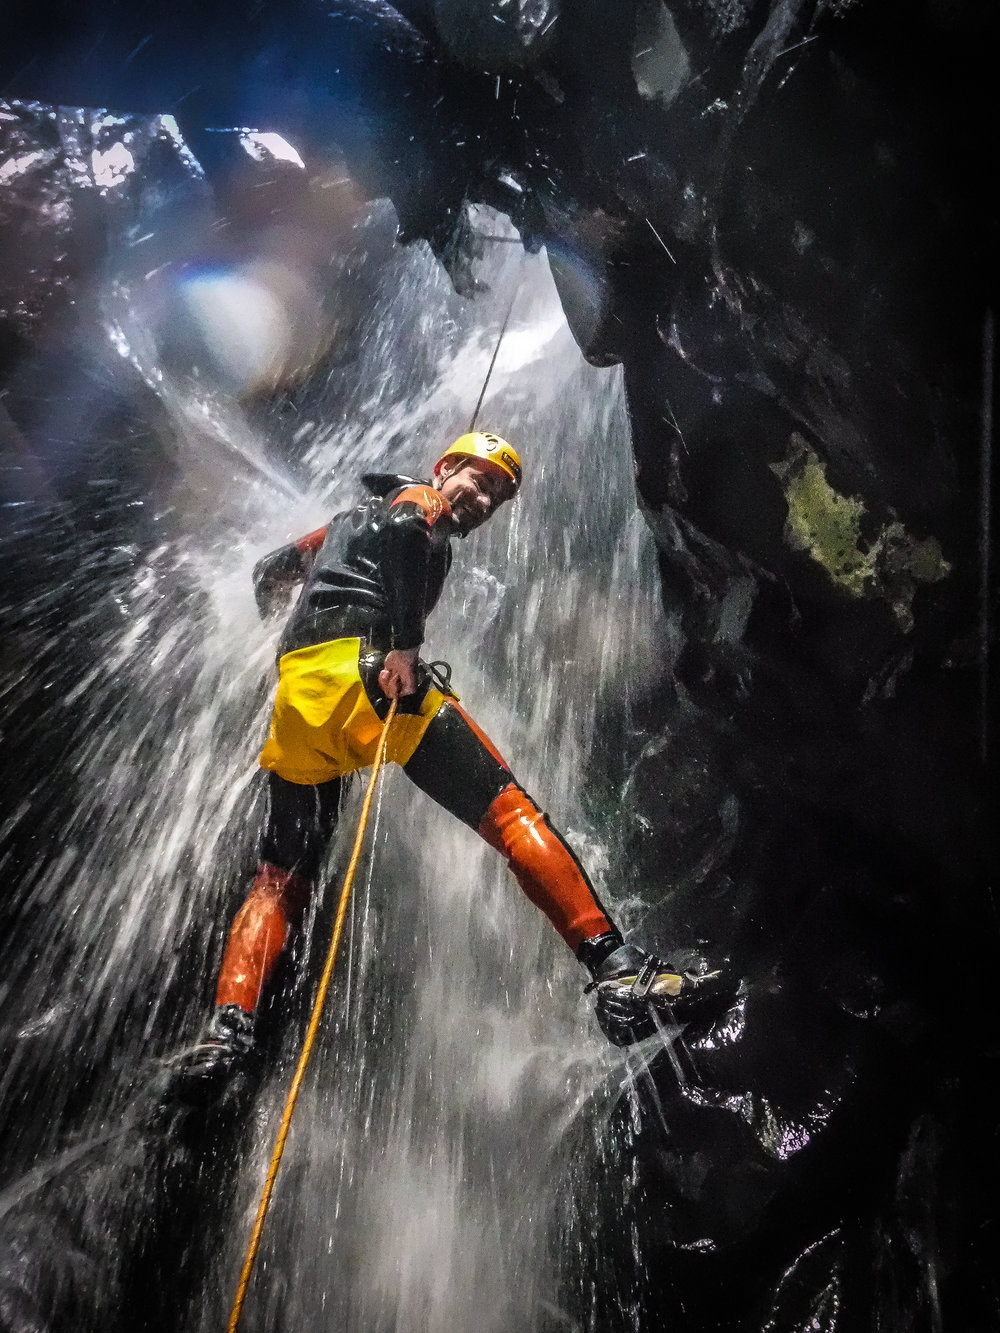 10 best things to do on sao miguel - Canyoning.jpg